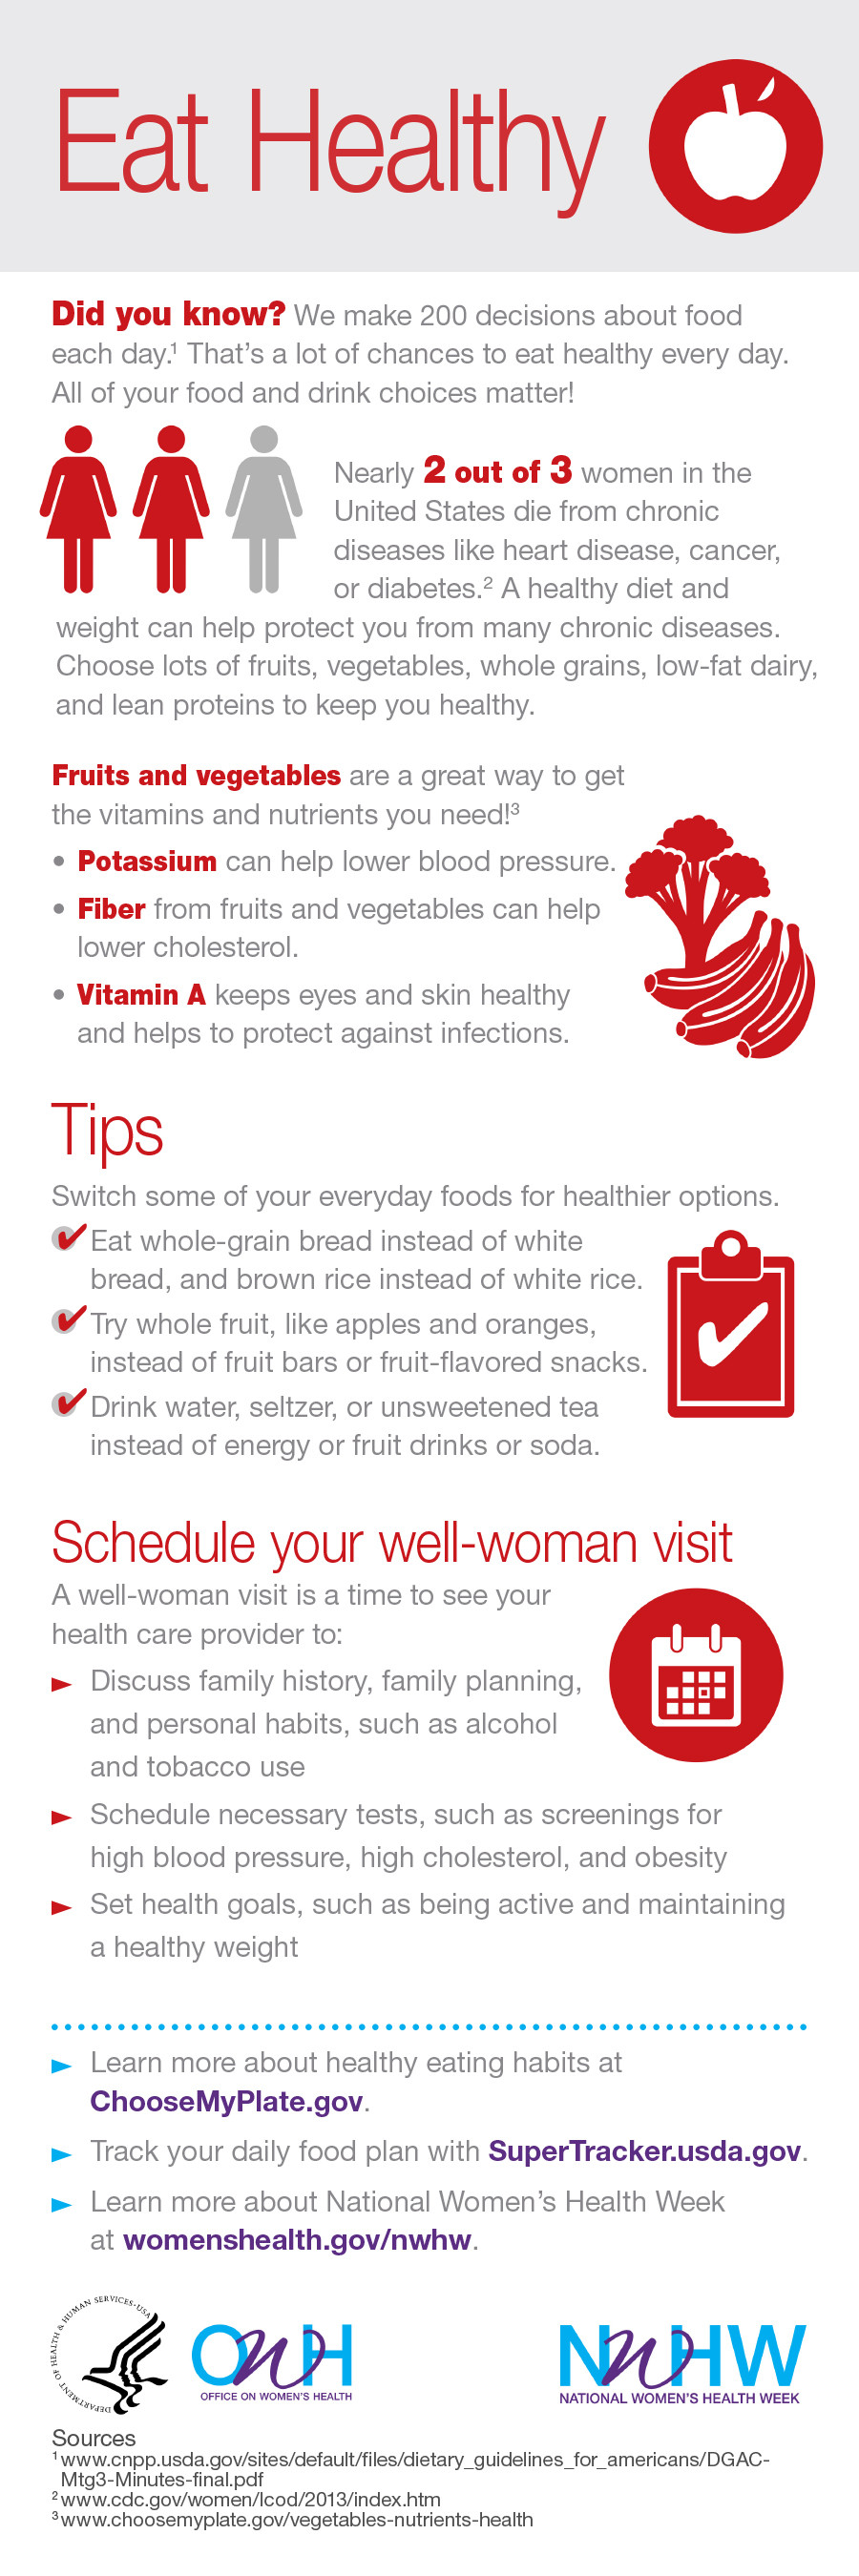 nwhw_infographic_eat_healthy_0.jpg